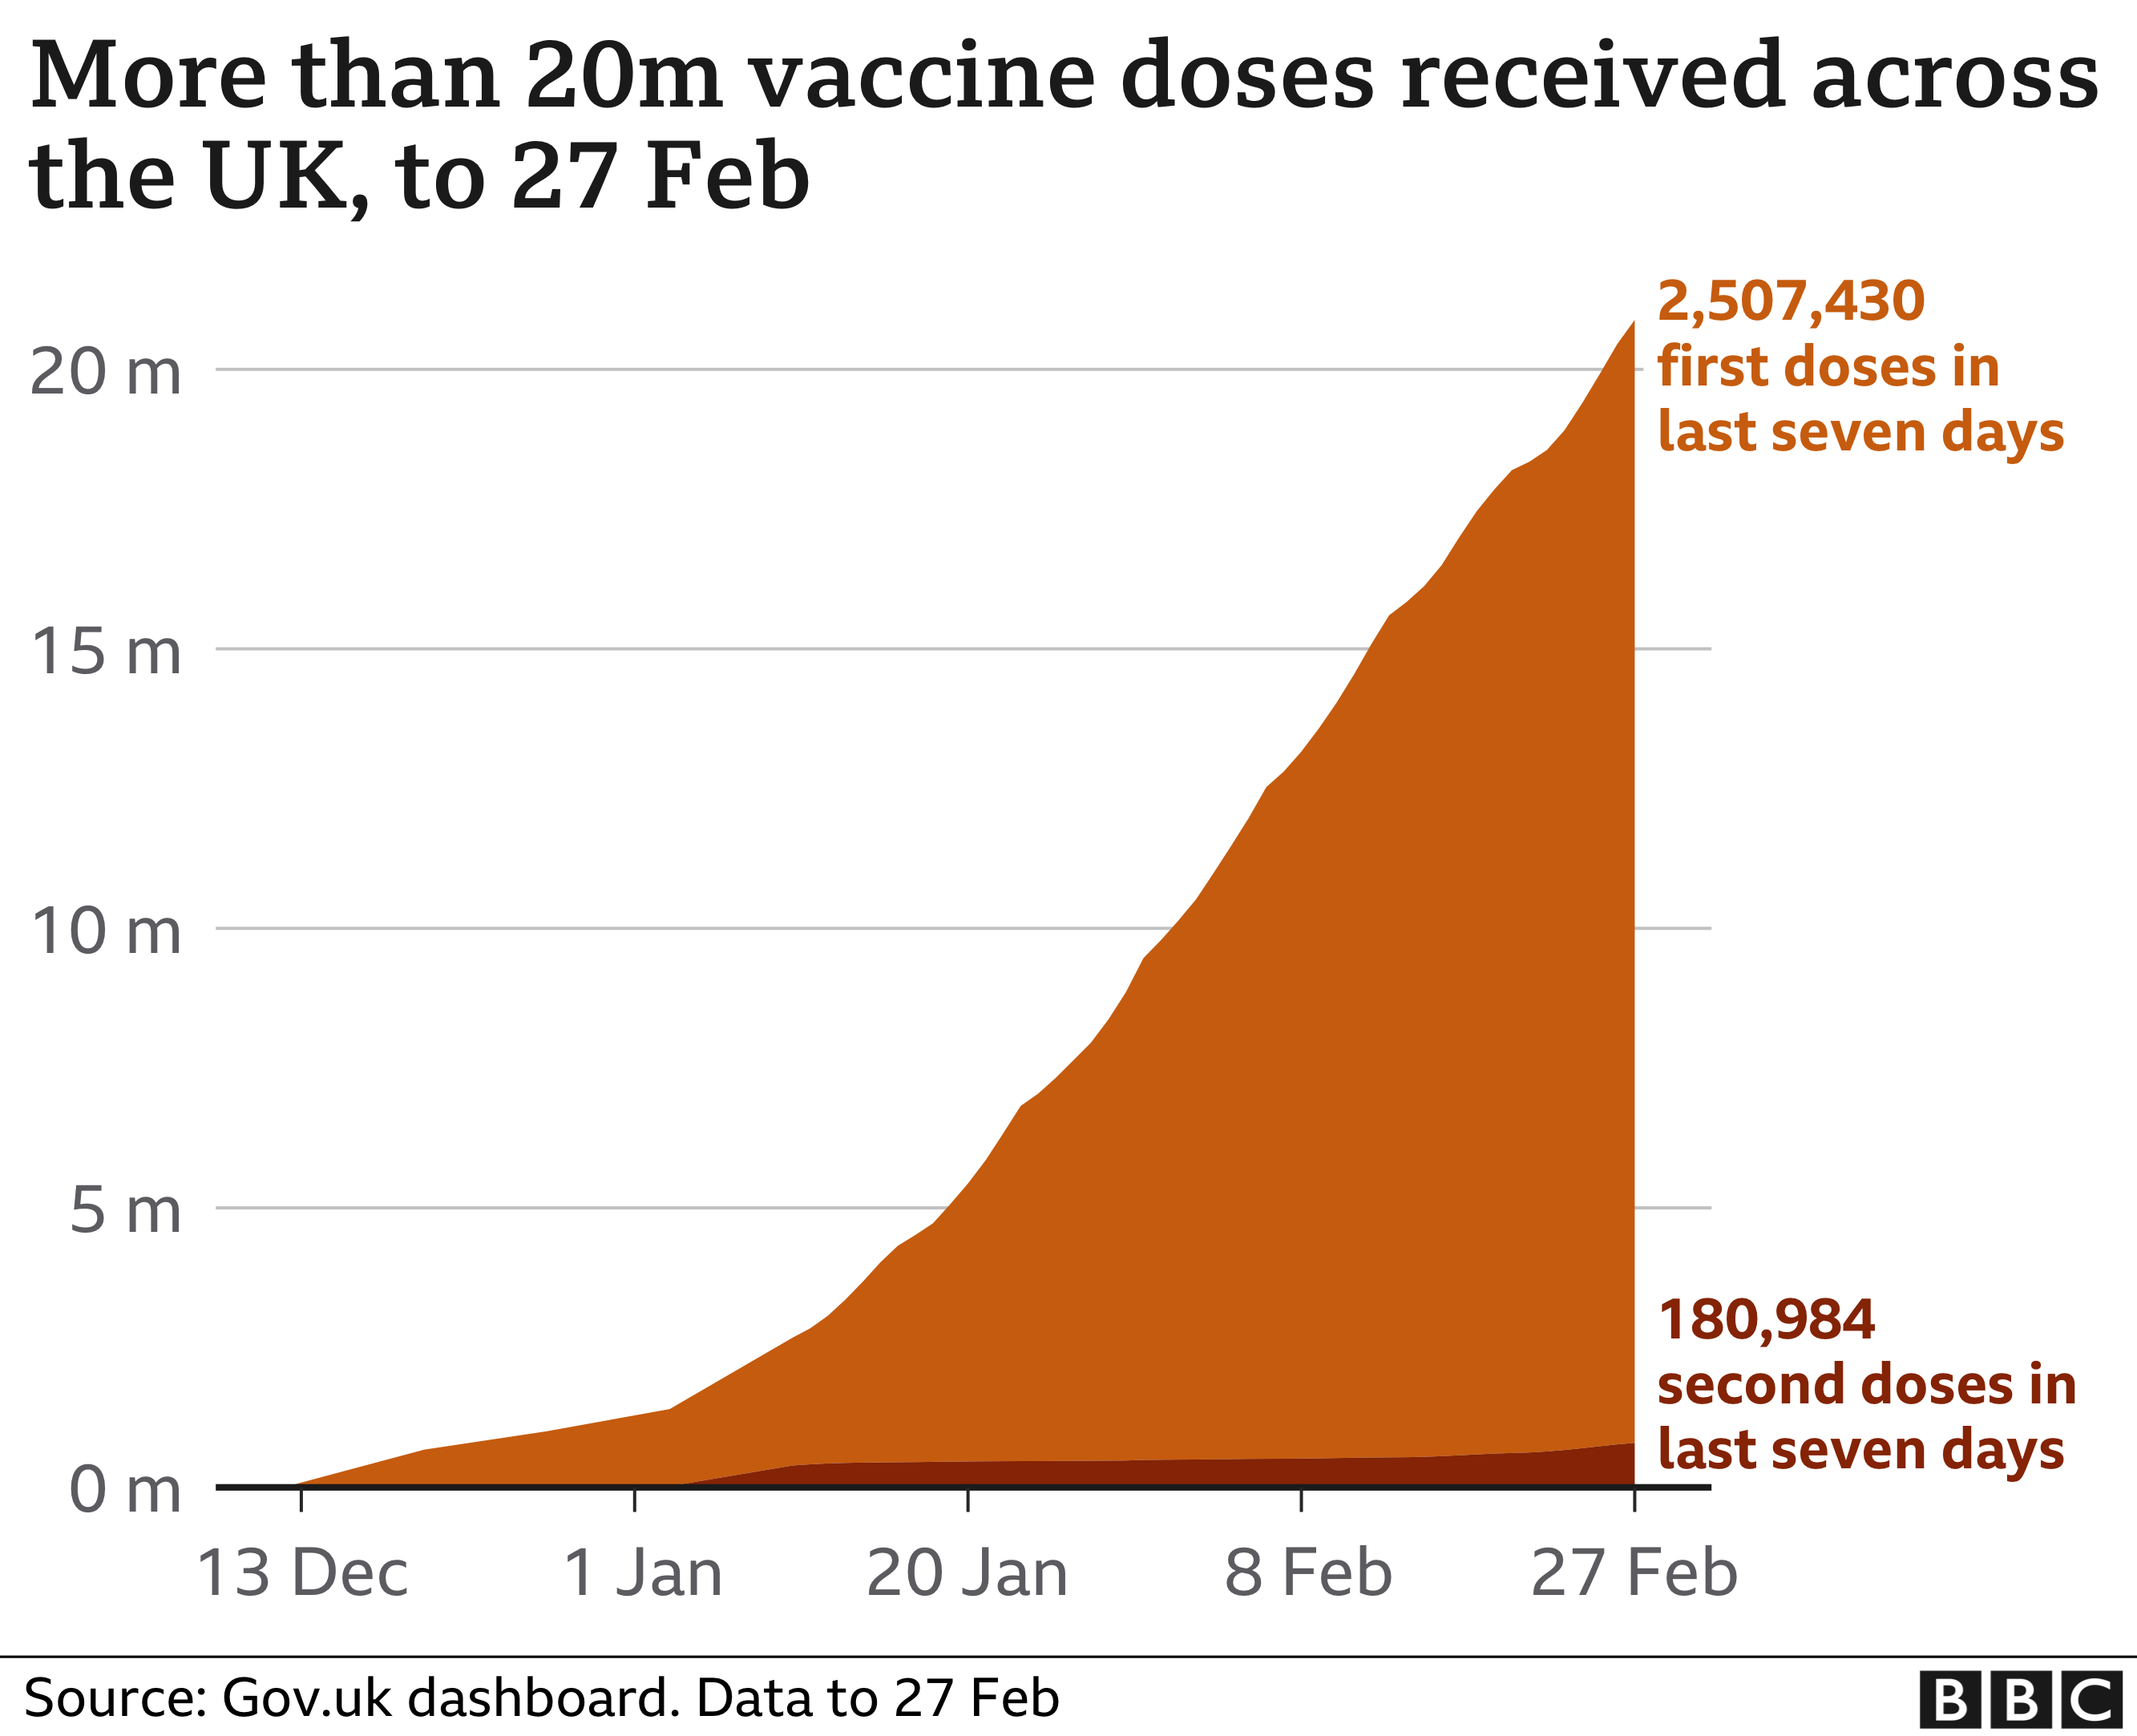 Graph showing vaccination trajectory in UK after 20m first doses total was reached on 28 February 2021